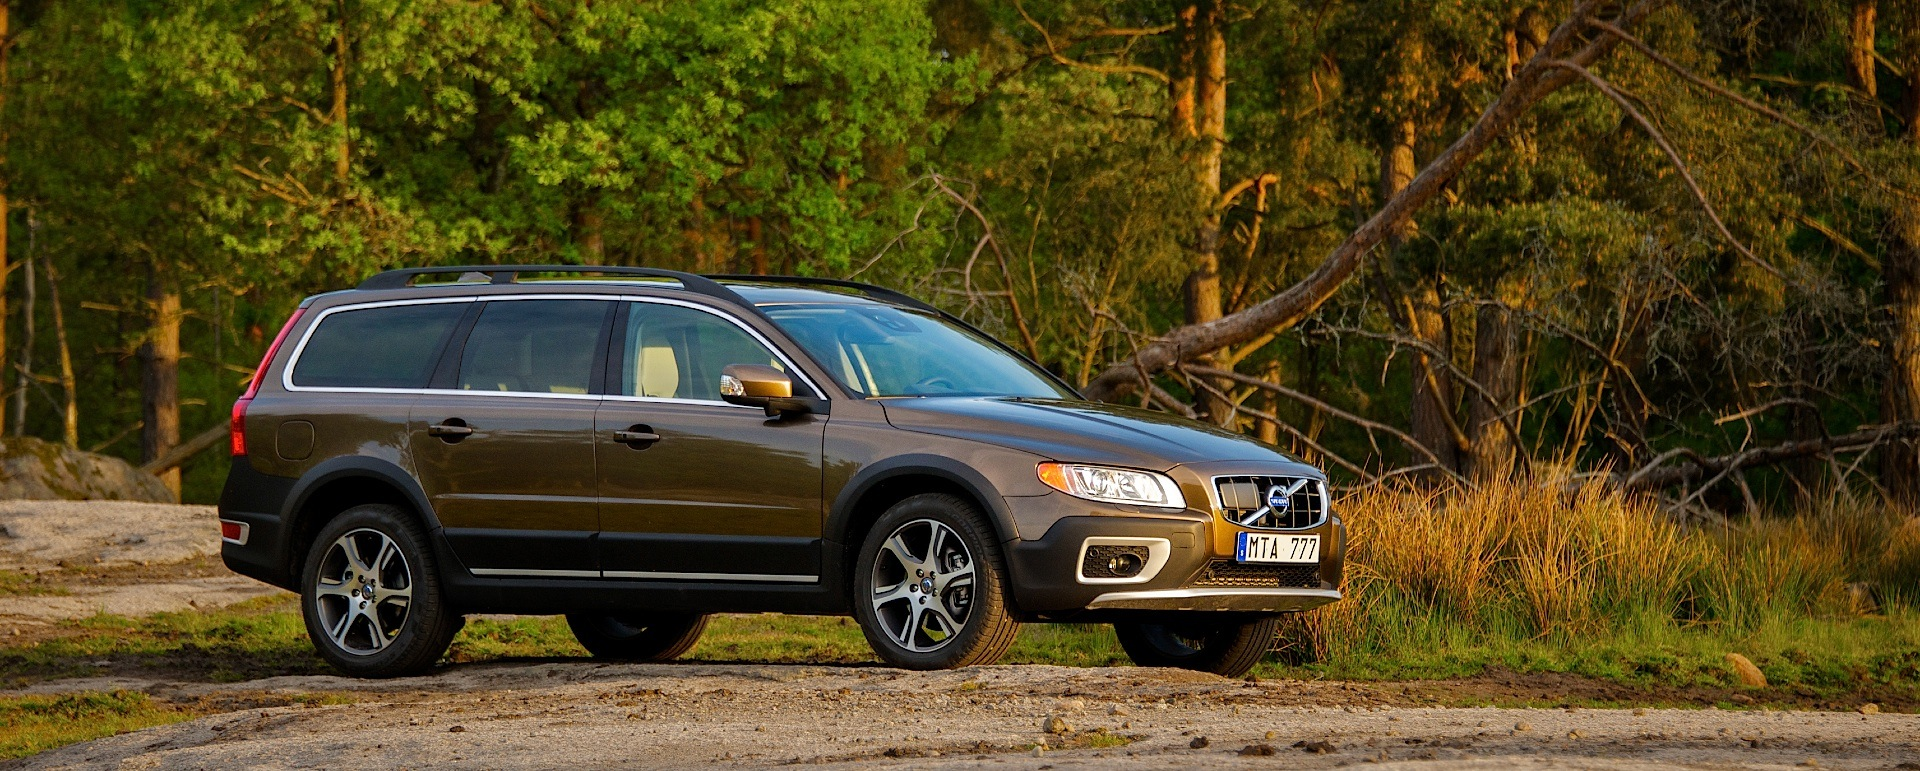 cars se homage volvo cross trailed the new lux review video to with uk country awd